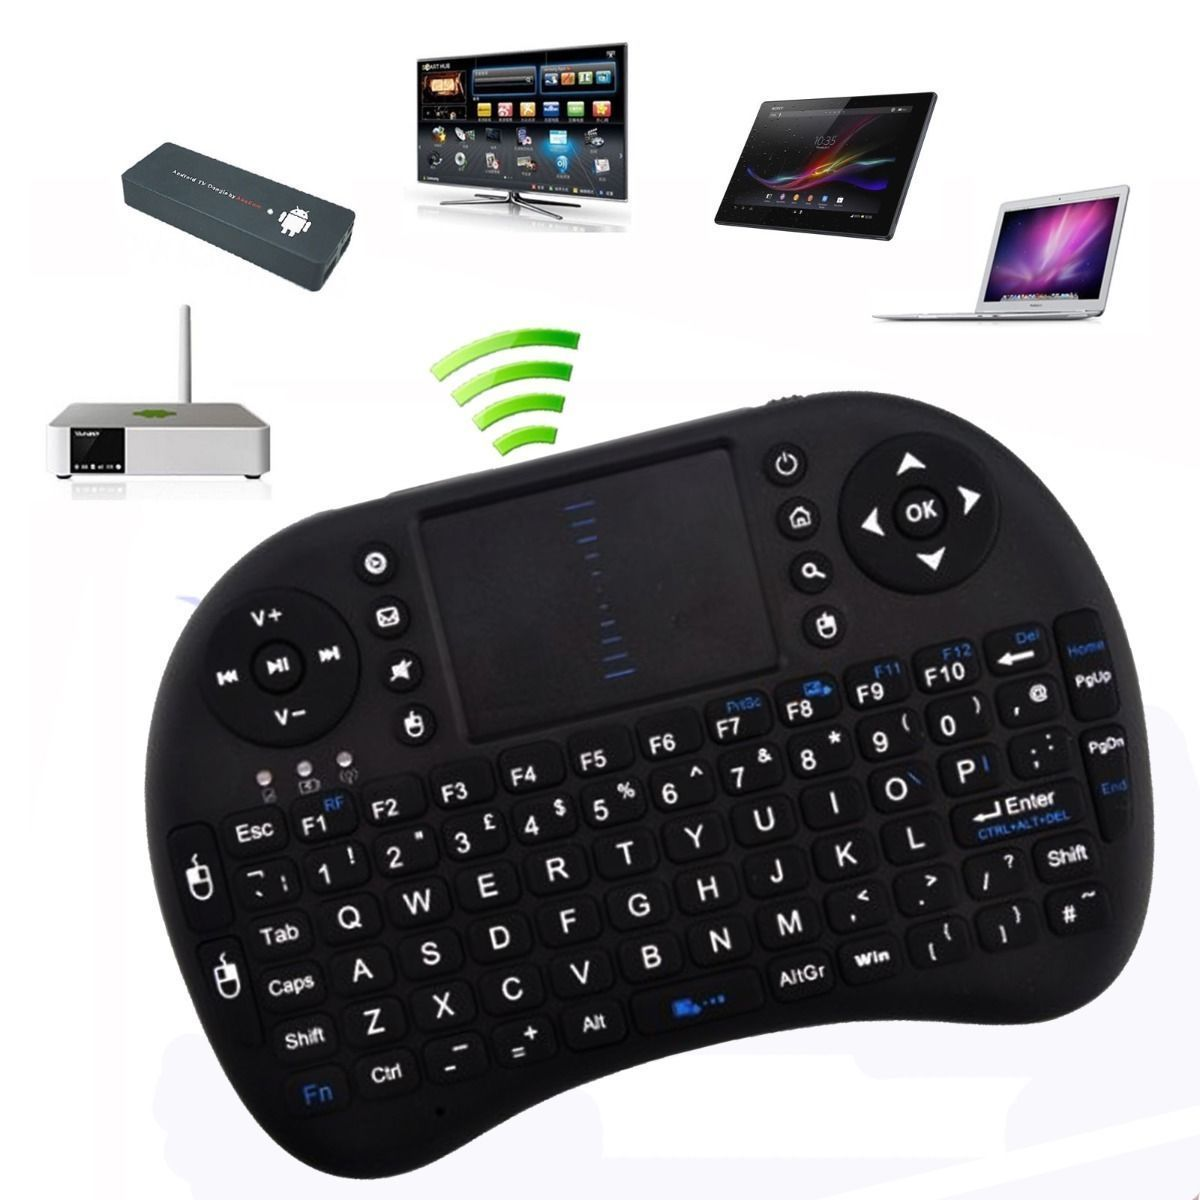 2.4G Wireless Mini Portable Gaming Keyboard Mouse Touchpad for PC, Tablet, Laptop, Android TV Box, Smart TV, Google TV Box, Xbox 360, PS3 & HTPC IPTV